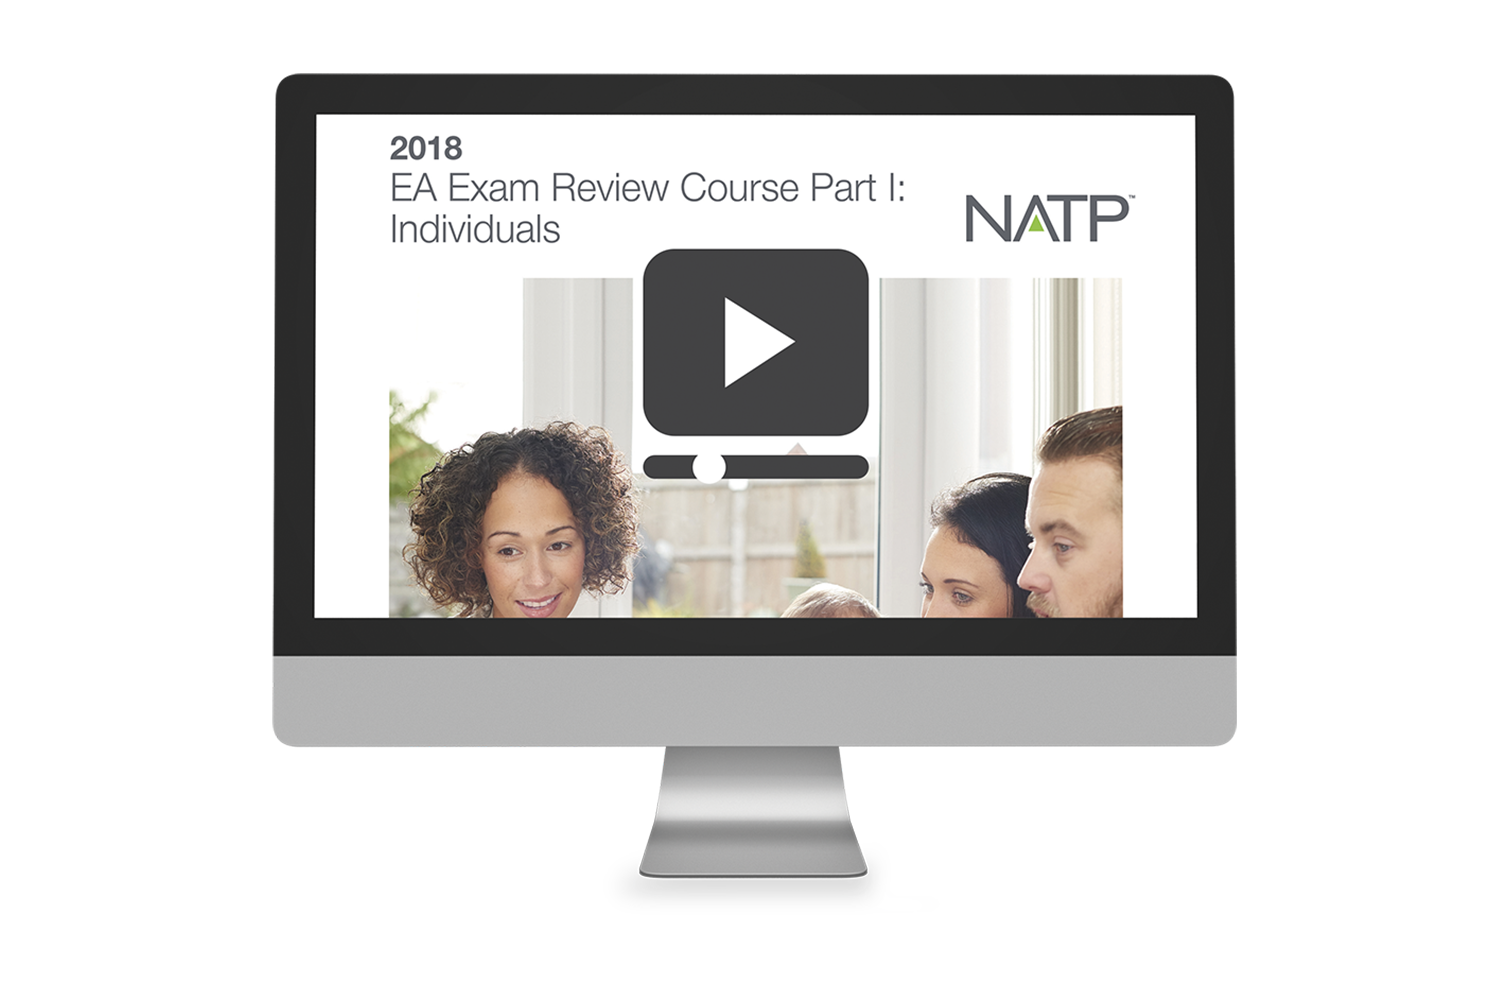 EA Exam Review Course Part I Streamed Recording (2018) - #R3803